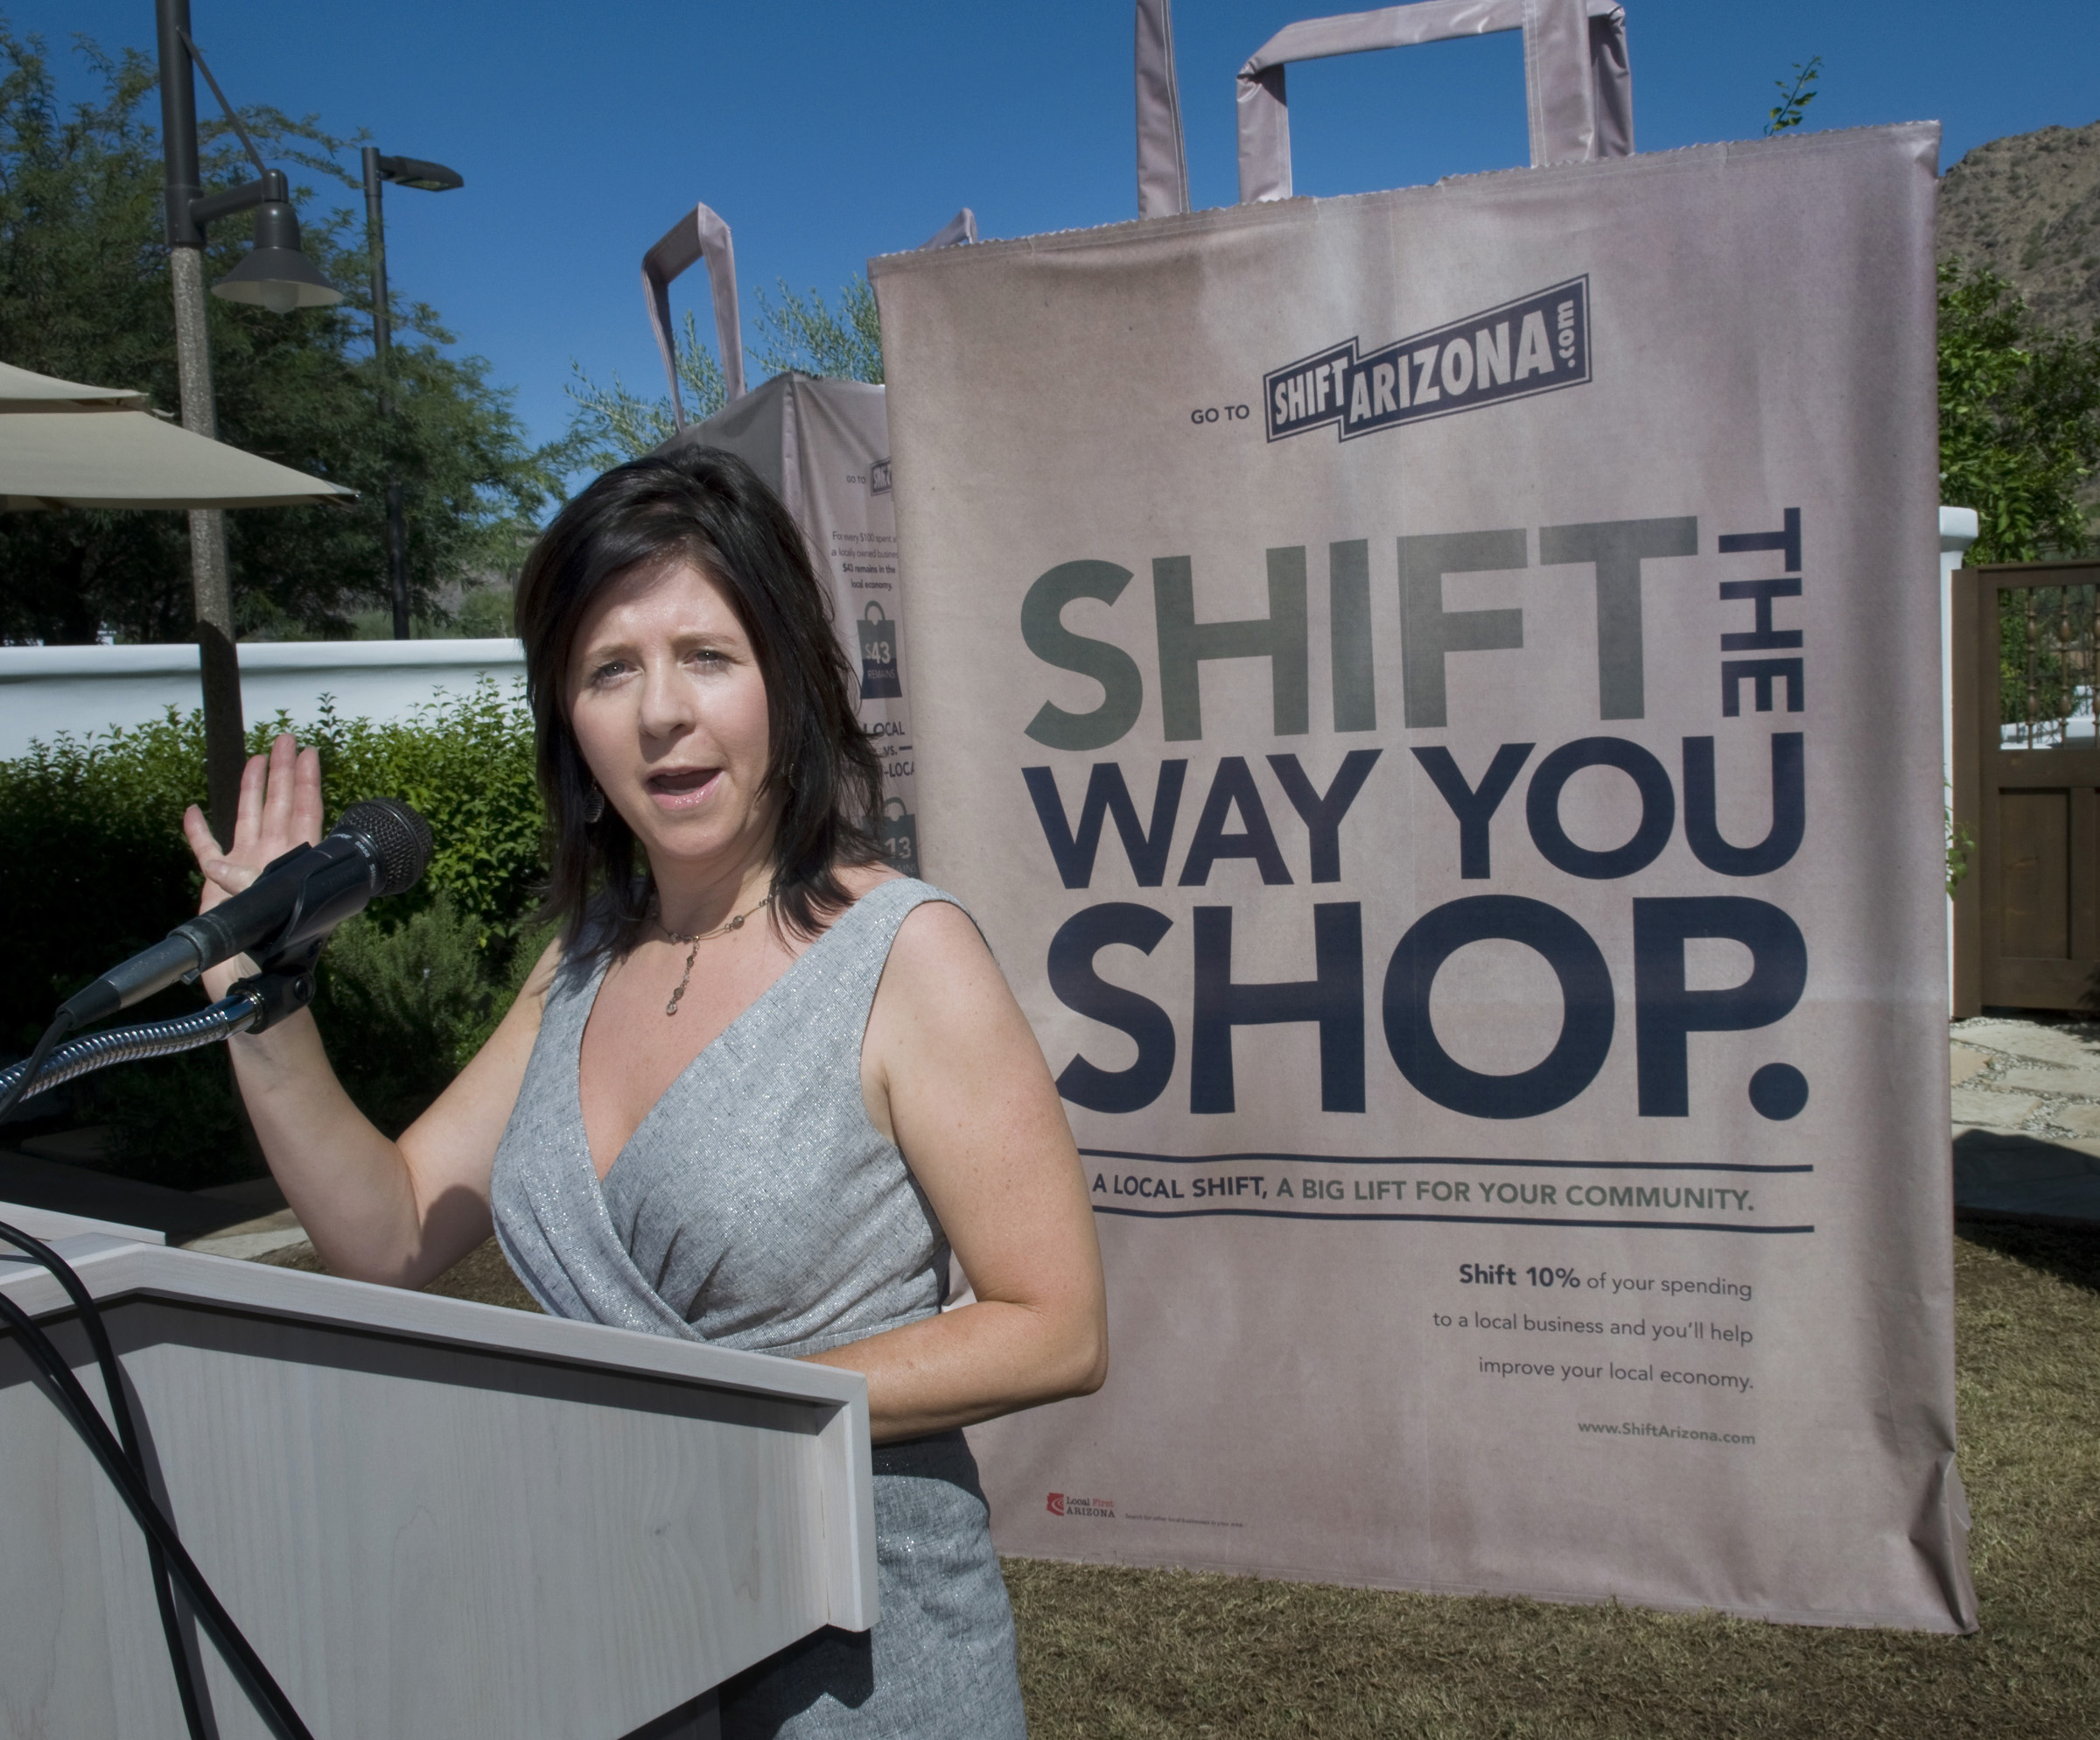 Kimber Lanning talks about the power of a 10% shift in the way you shop. Photo courtesy of Rick D'Elia of D'Elia Photographic